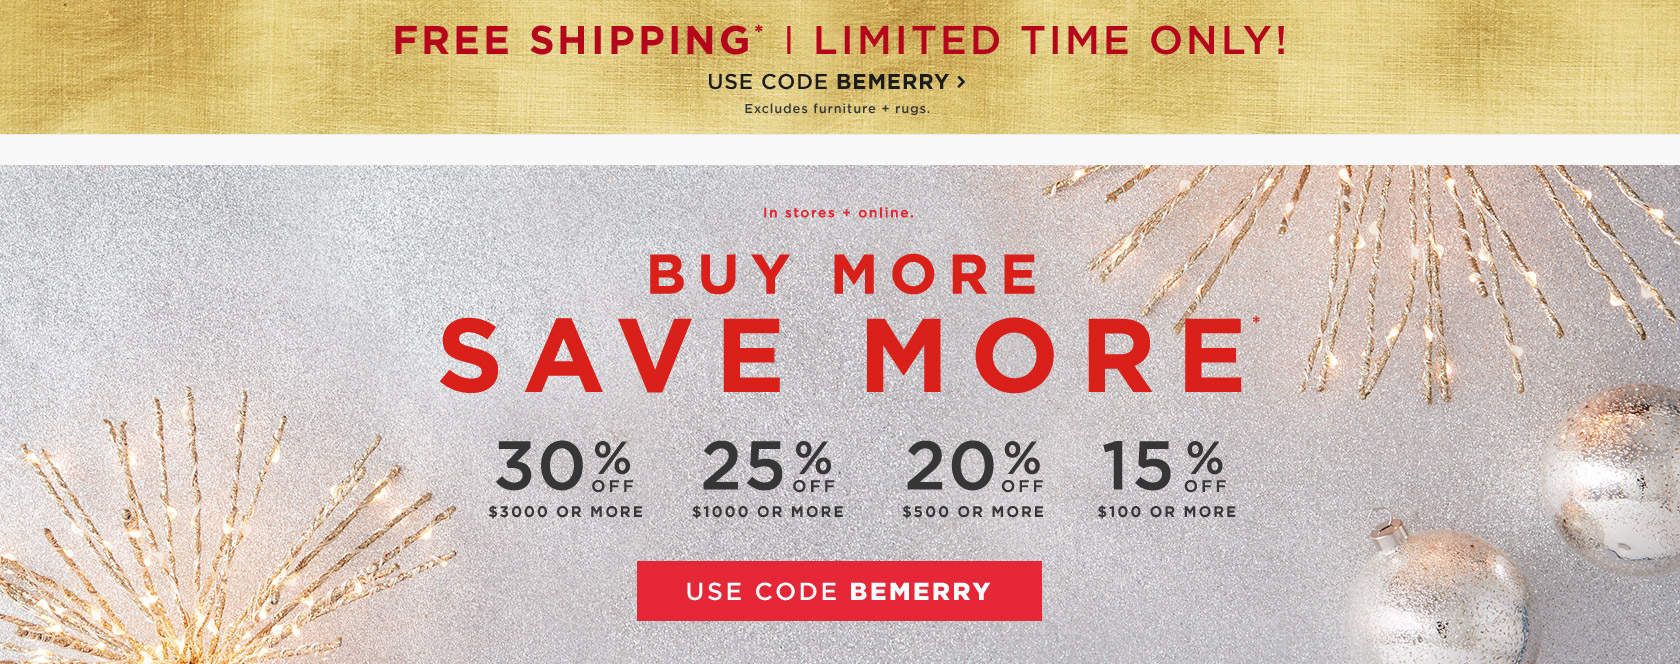 In Stores + Online. Buy More Save More. Use Code BEMERRY